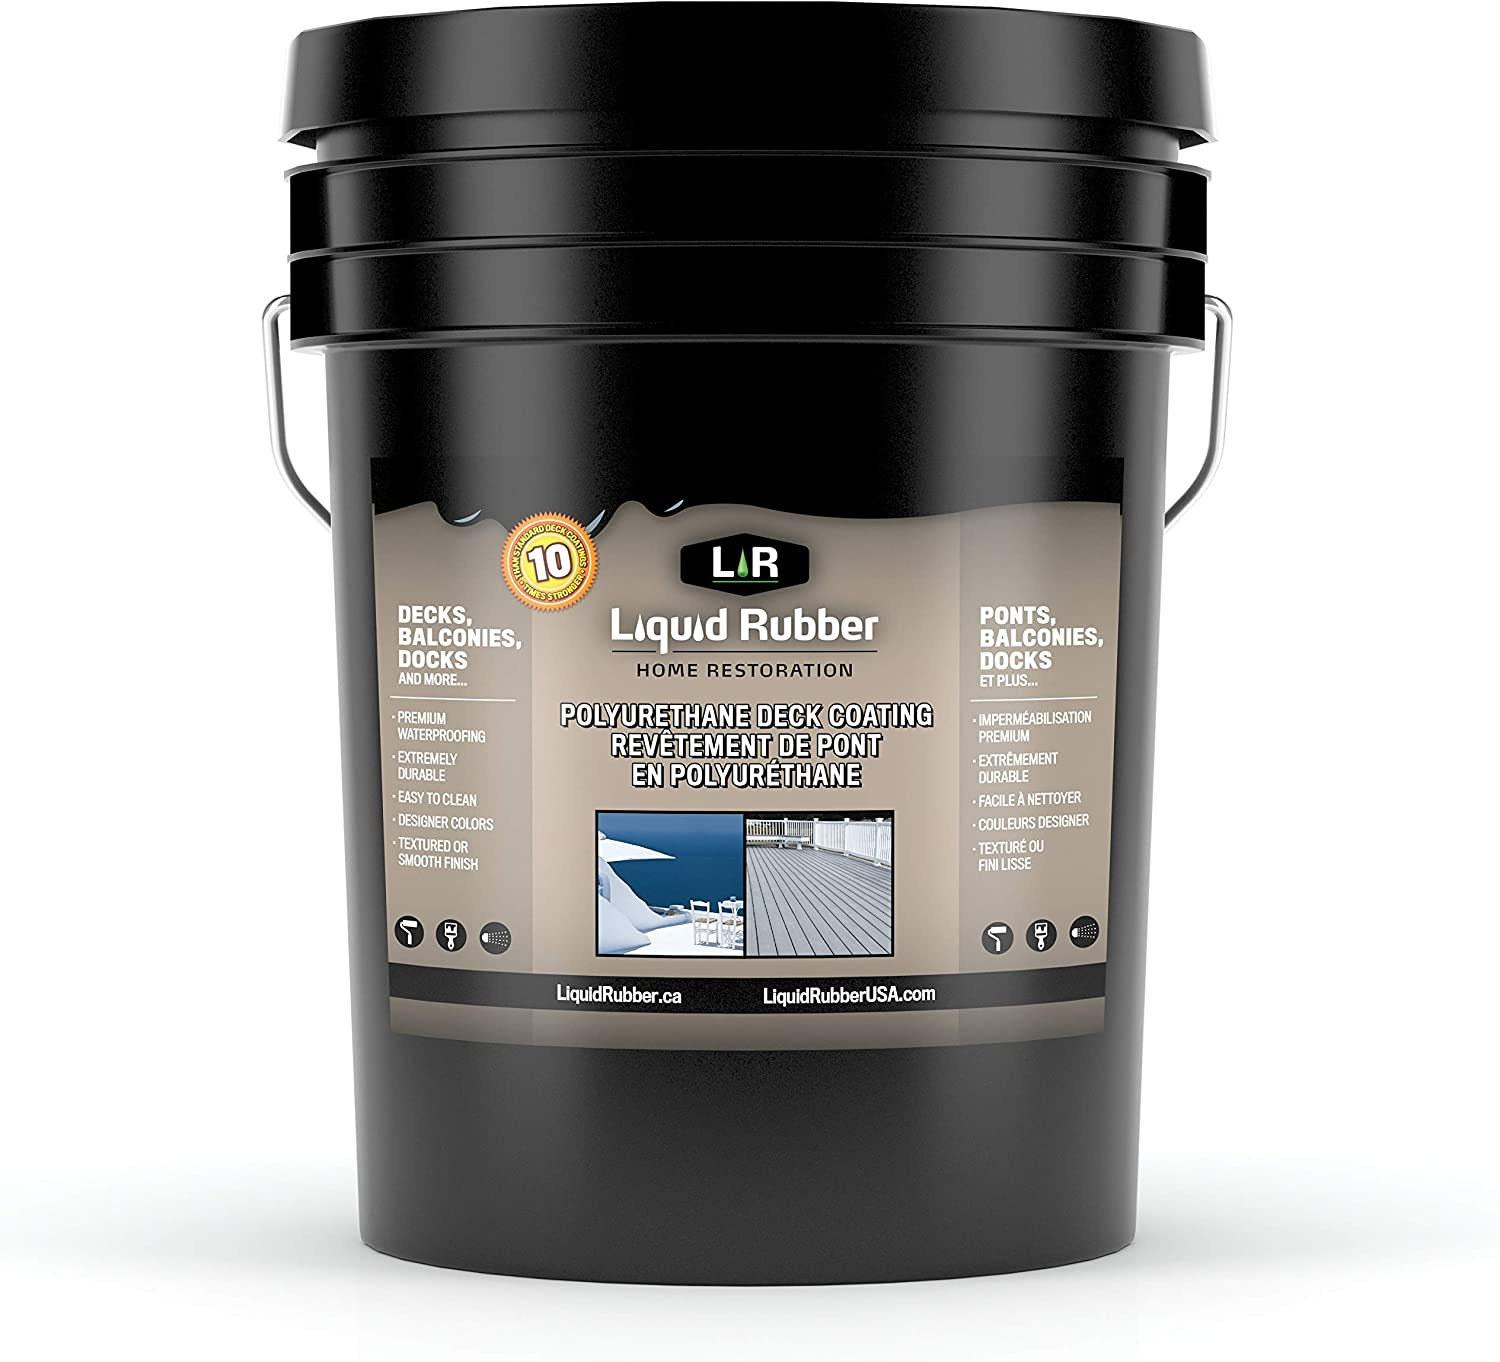 Liquid Rubber Textured Polyurethane Deck And Dock Coating Easy To Apply Uv Resistant Sealant Indoor Outdoor Use Saddle Brown 5 Gallon Amazon Com